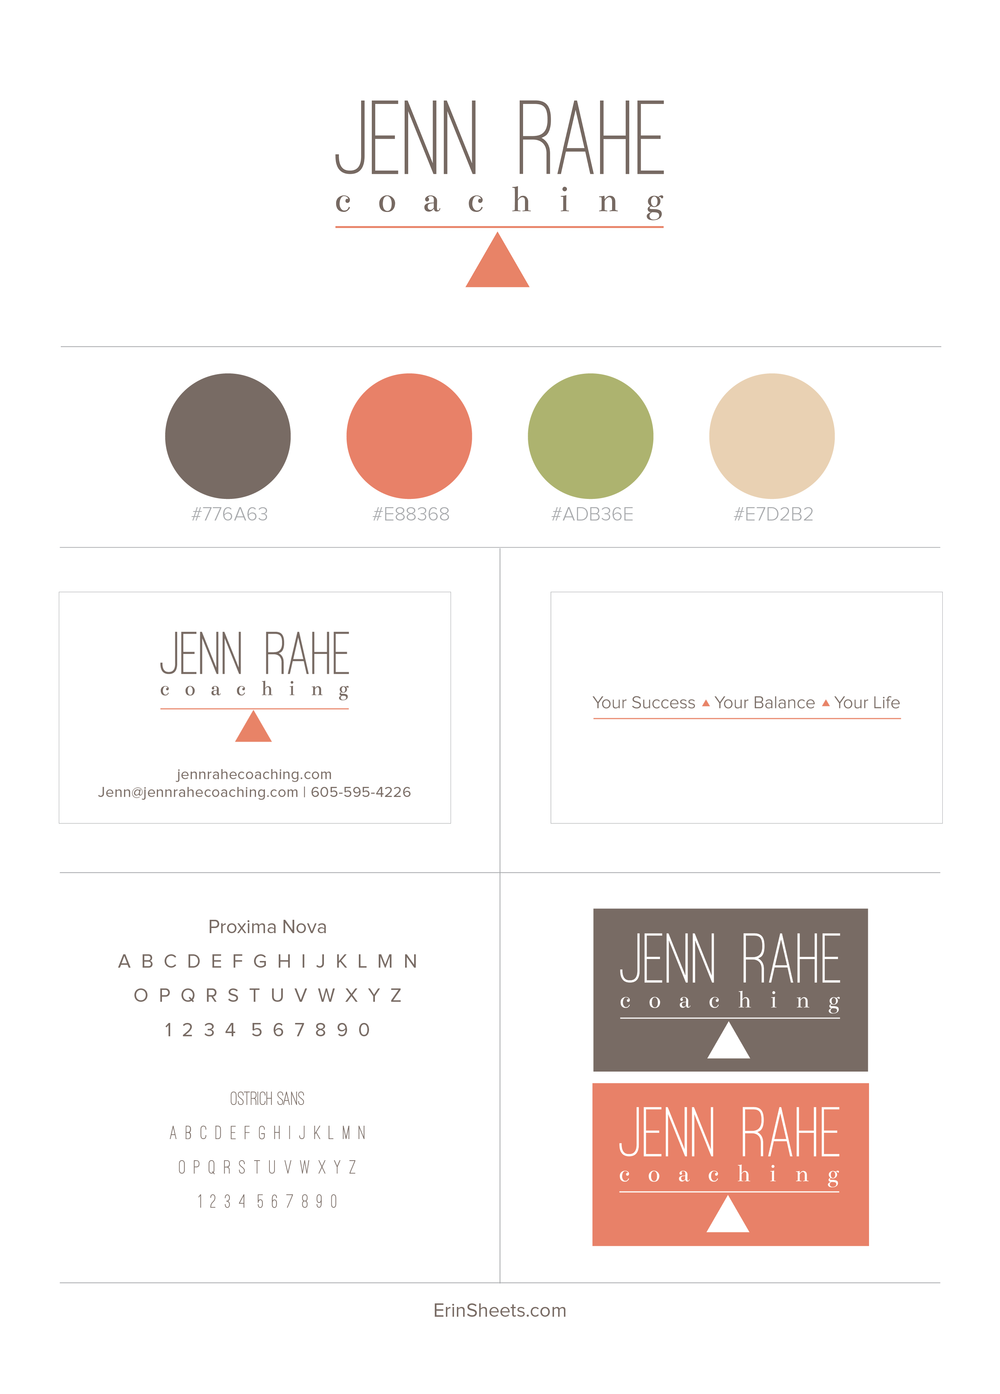 Jenn Rahe Coaching — Erin Sheets | Career Inspiration | Pinterest ...